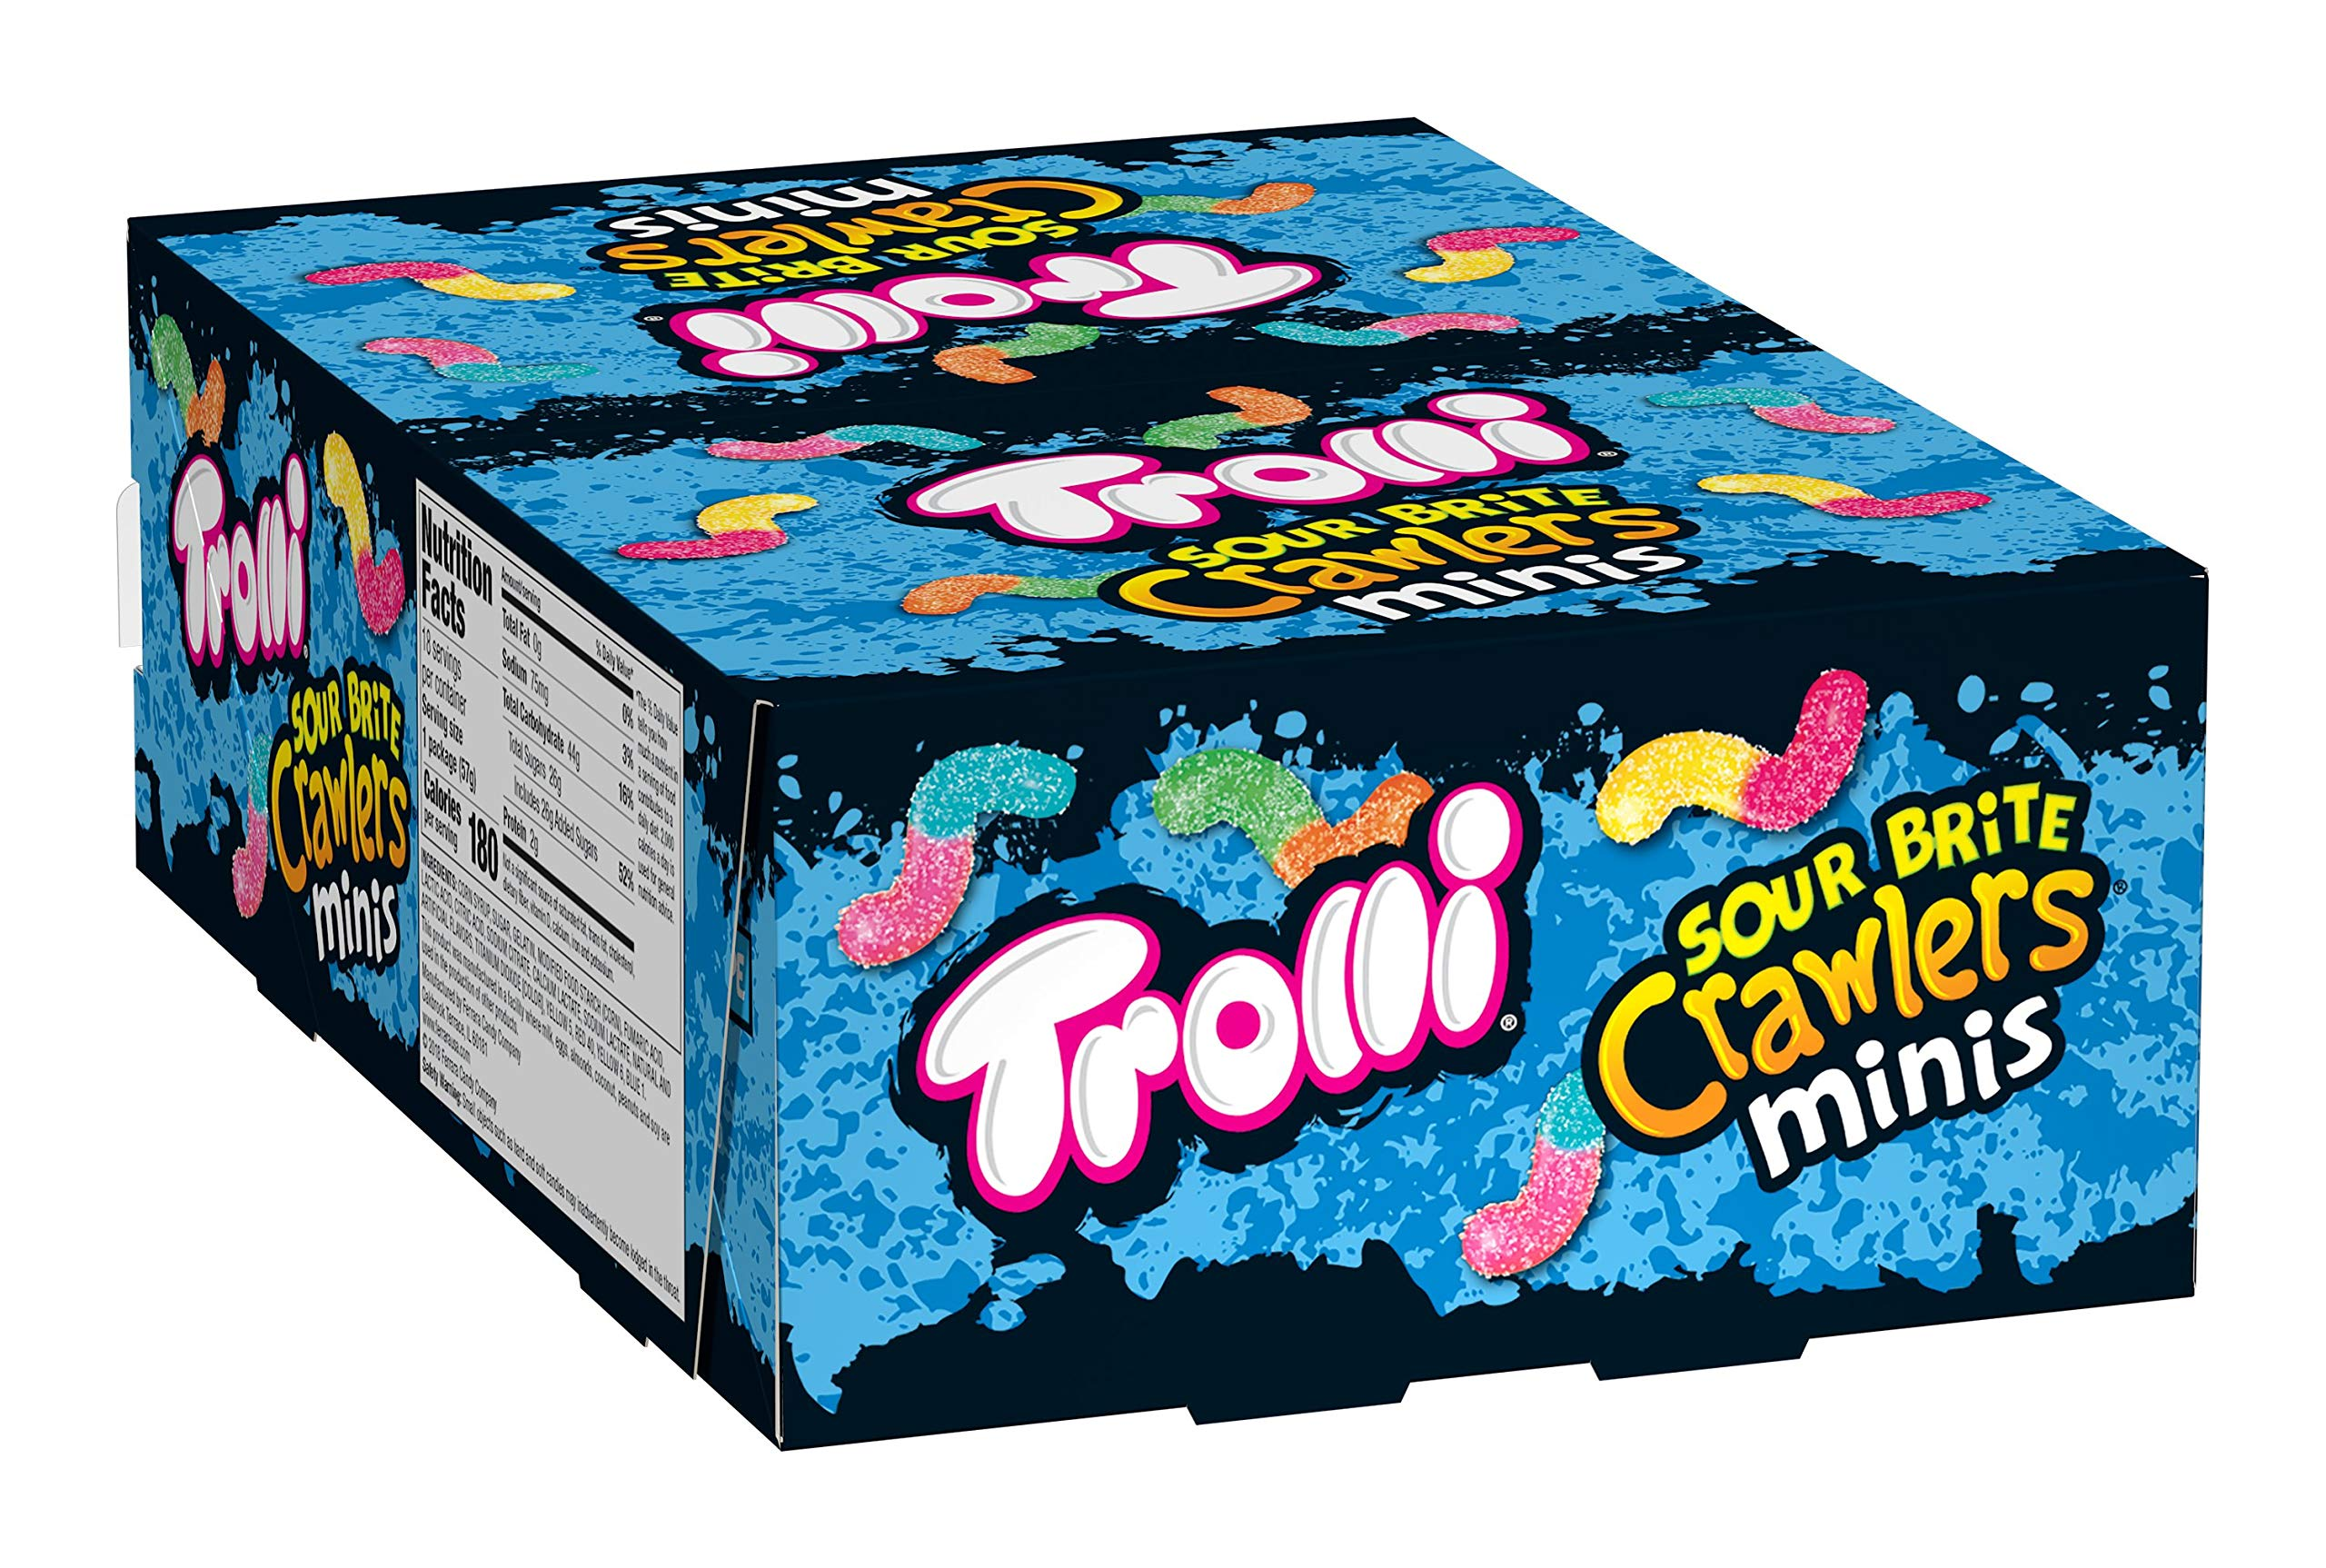 Trolli Sour Brite Mini Crawlers Gummy Worms, 2 Ounce Bag (Pack of 18) Sour Gummy Worms by Trolli (Image #4)